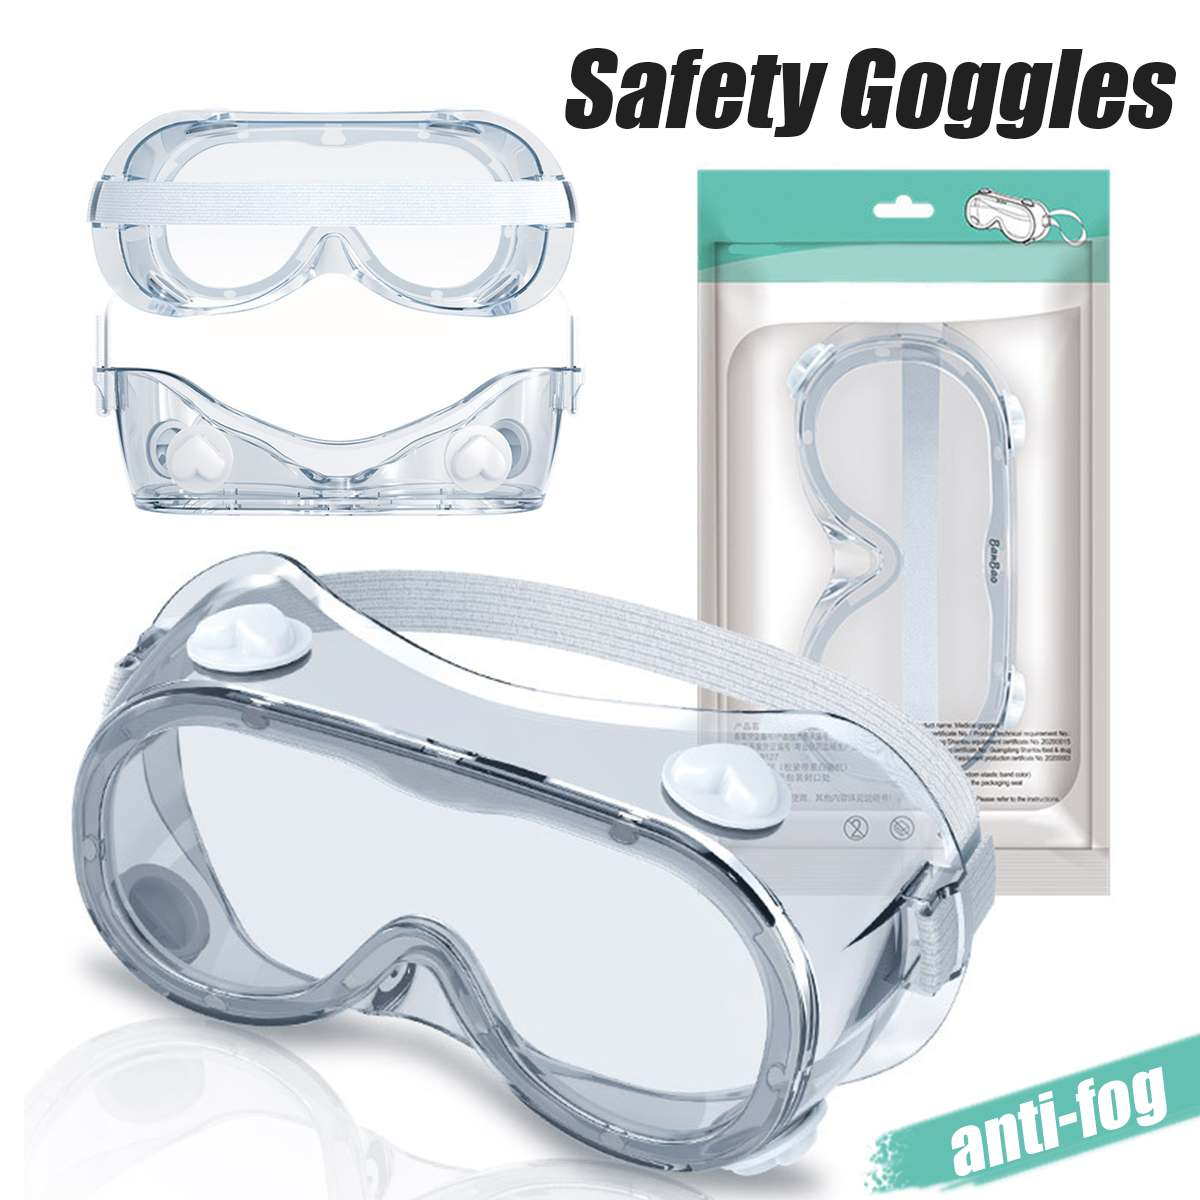 Medical Safety Goggles Fully Enclosed Lens Goggles Eye Protective Glasses Anti-Fog Antisand Dust Splash-proof Resist UV Light